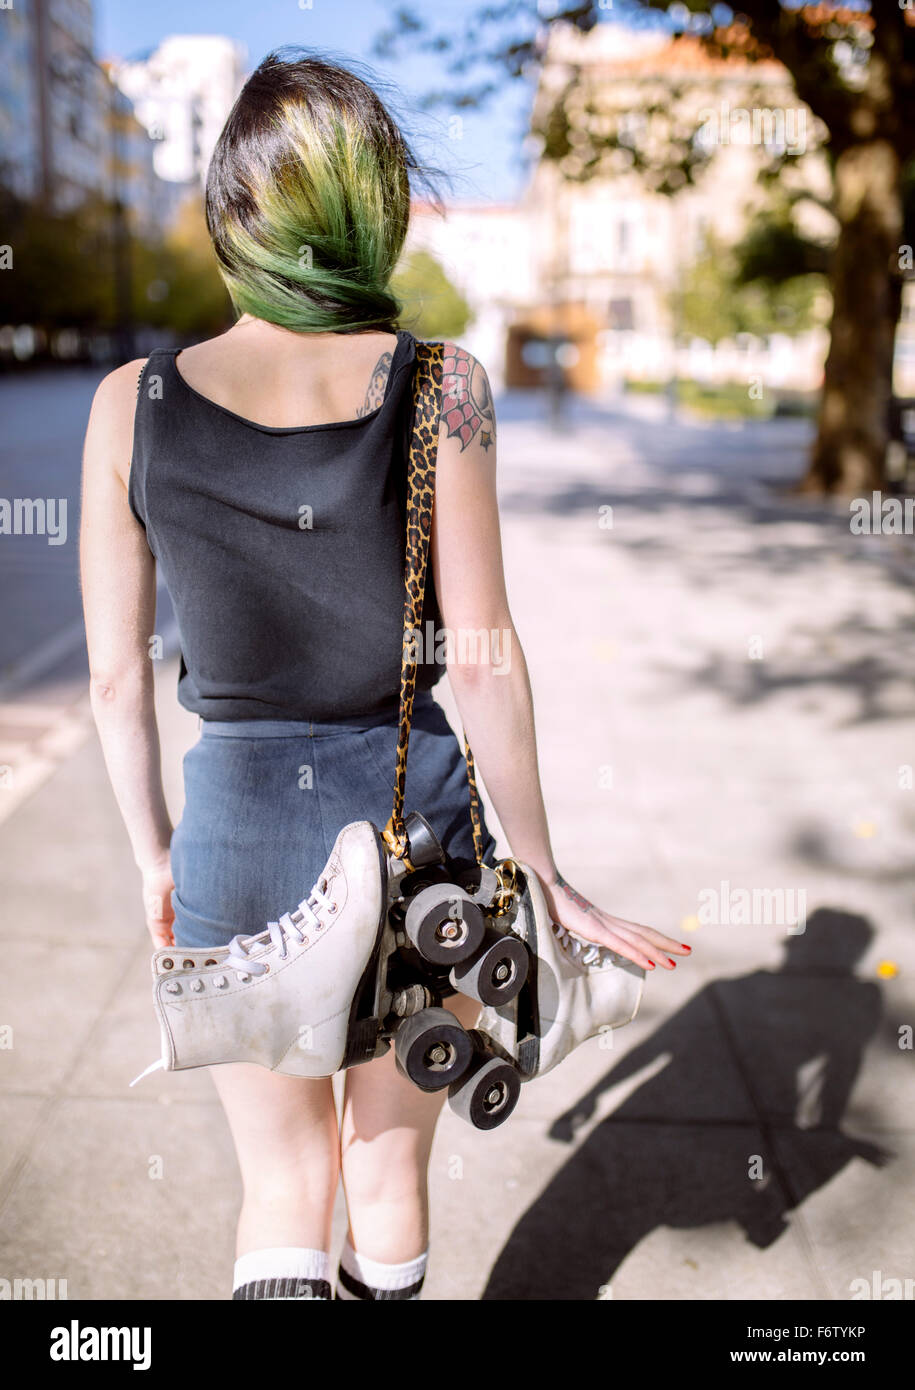 Spain, Gijon, back view of young woman with green dyed hair carrying inline skates over shoulder - Stock Image